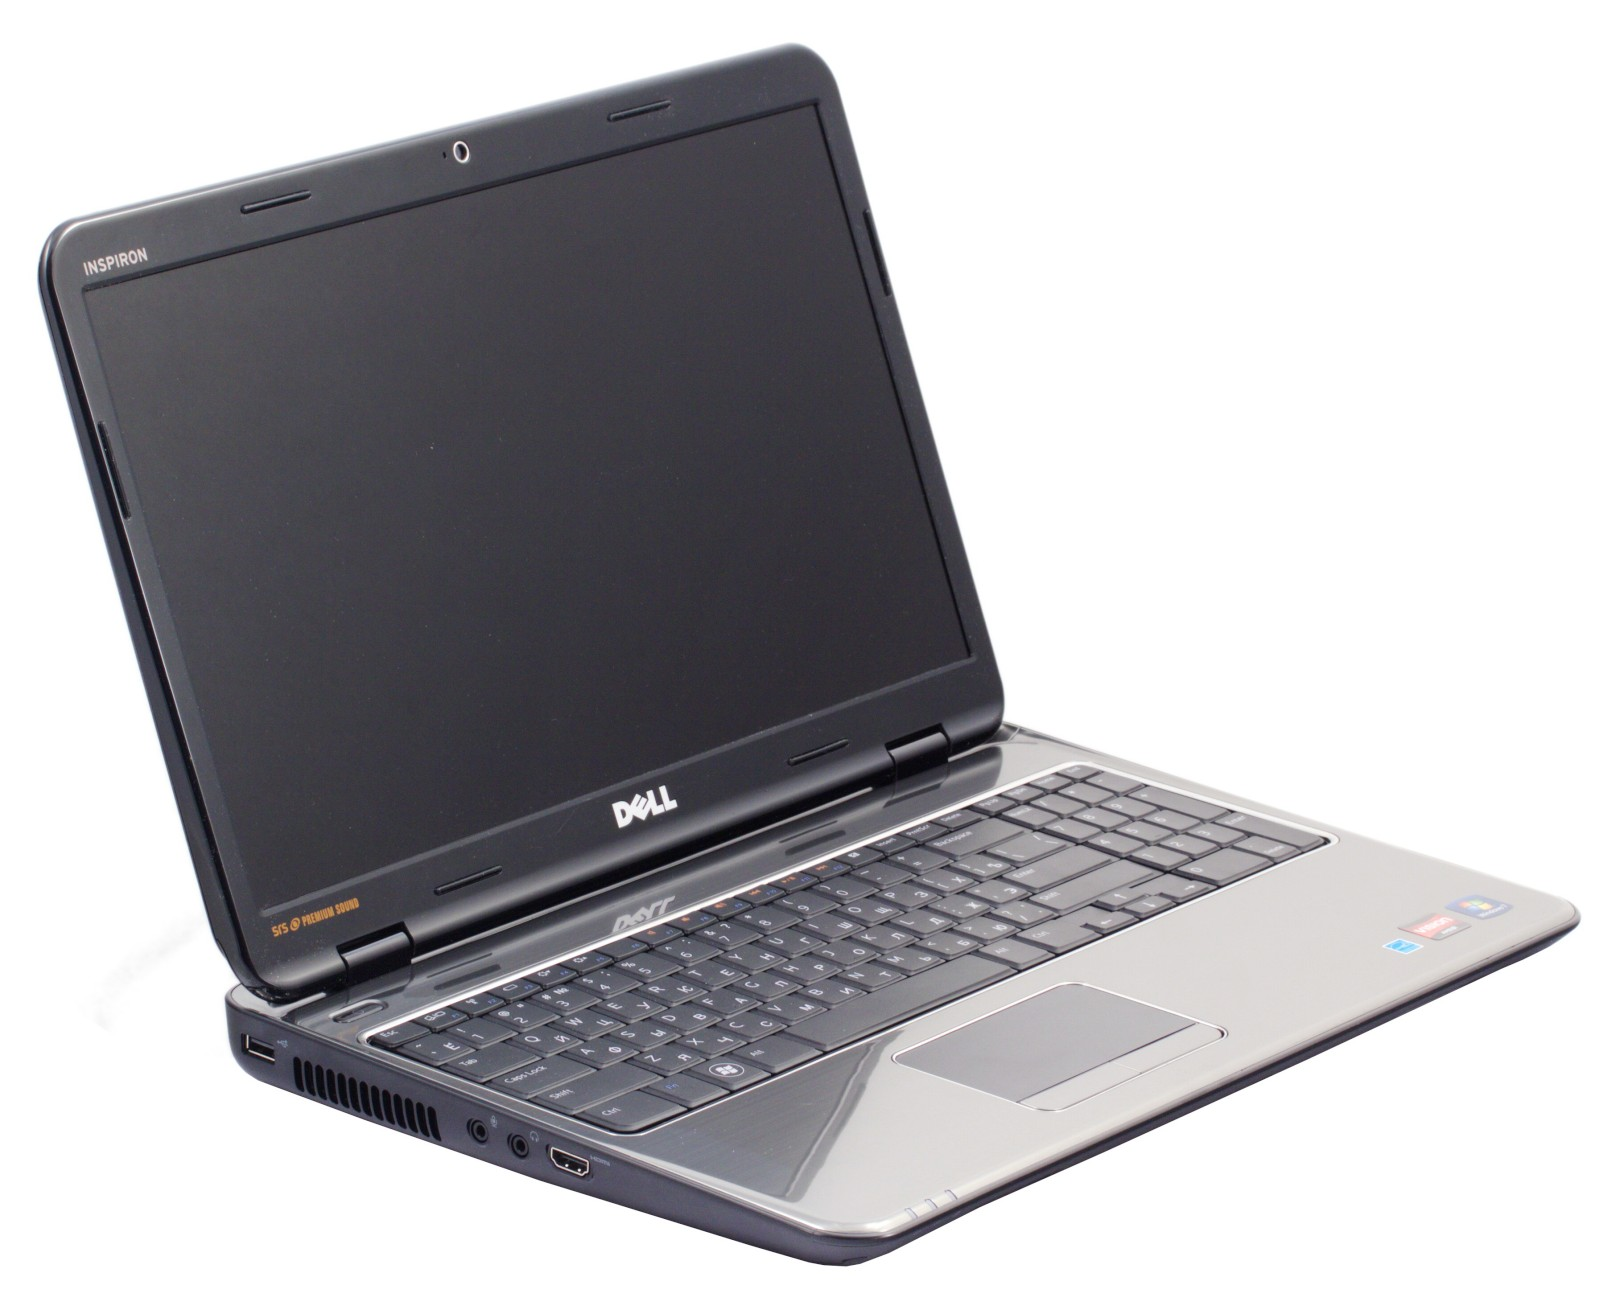 Dell Inspiron 15r N5010 Touchpad Driver Free Download